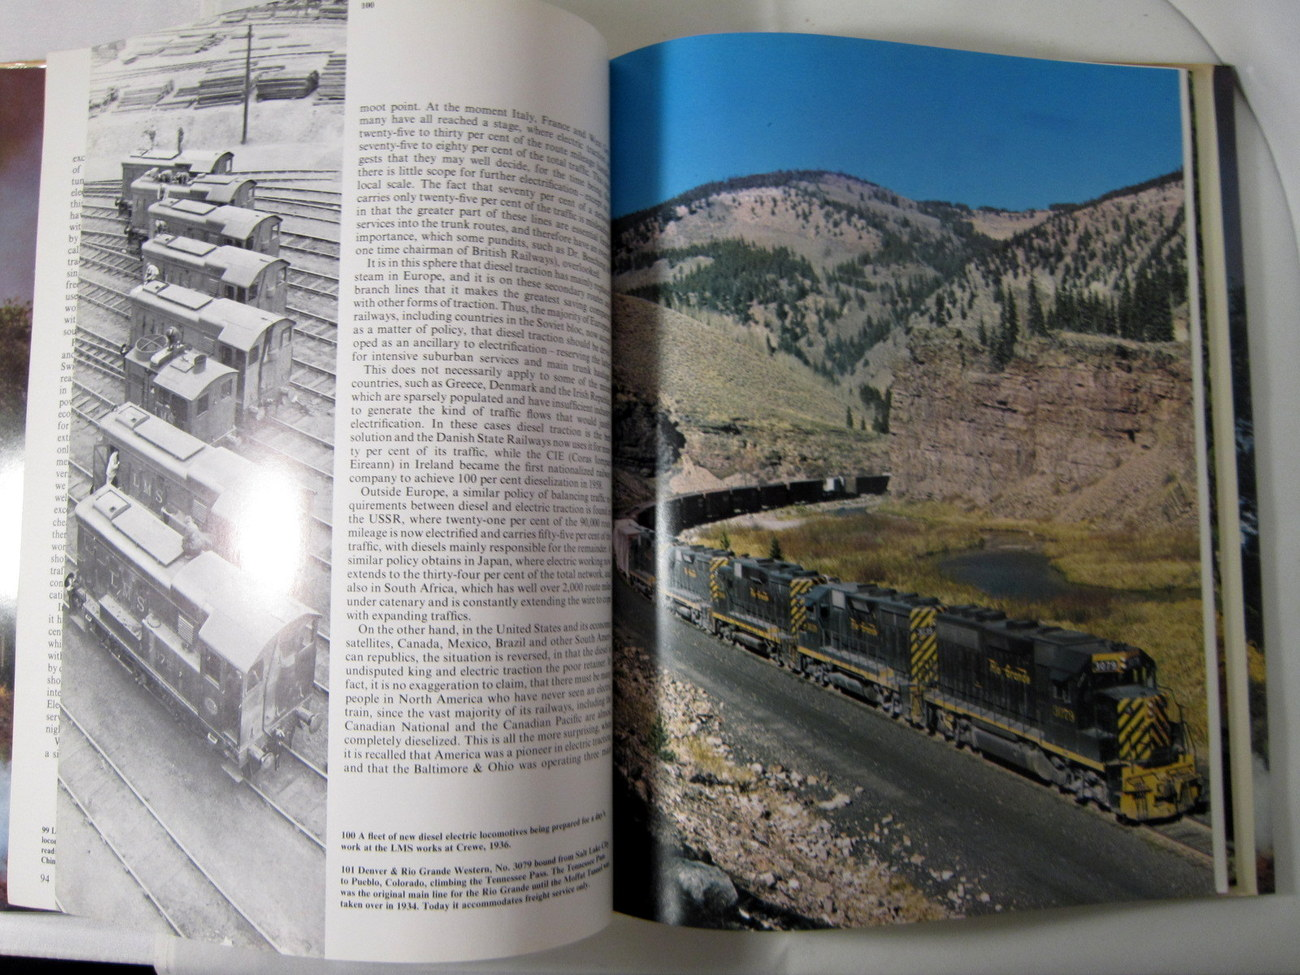 Trains Around the World 1973 Pictorial History of Trains image 6